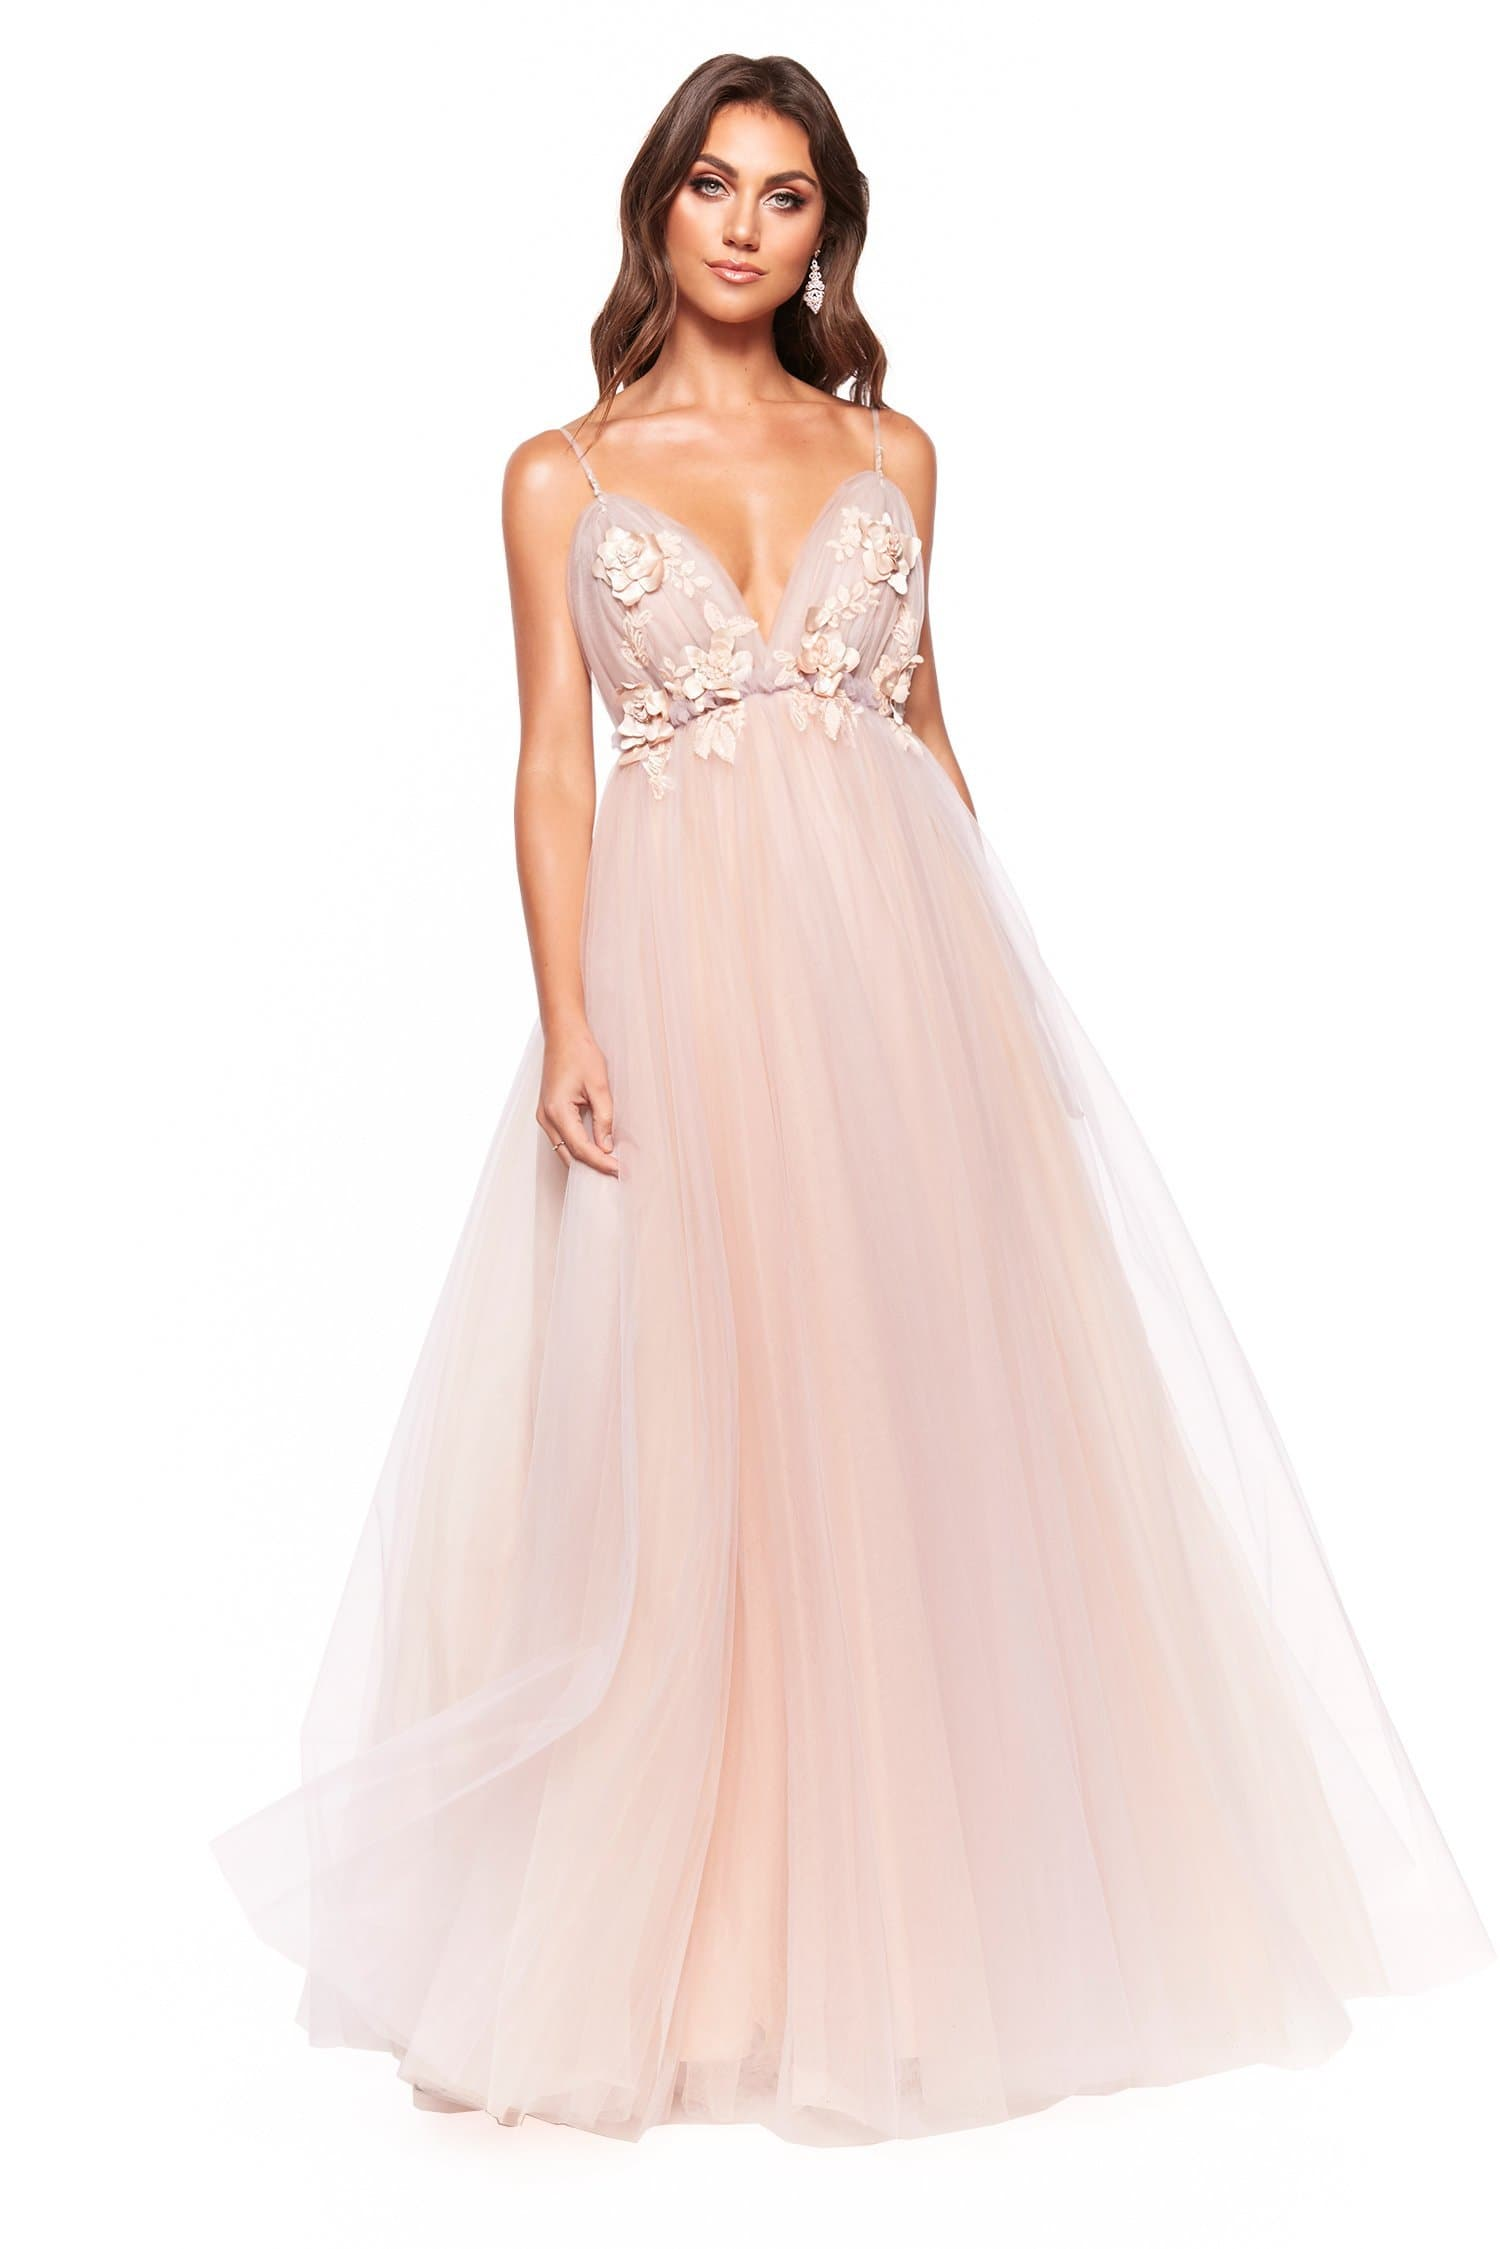 A&N Luxe Elira - Peach & Lilac Tulle Backless Gown with Floral Detail